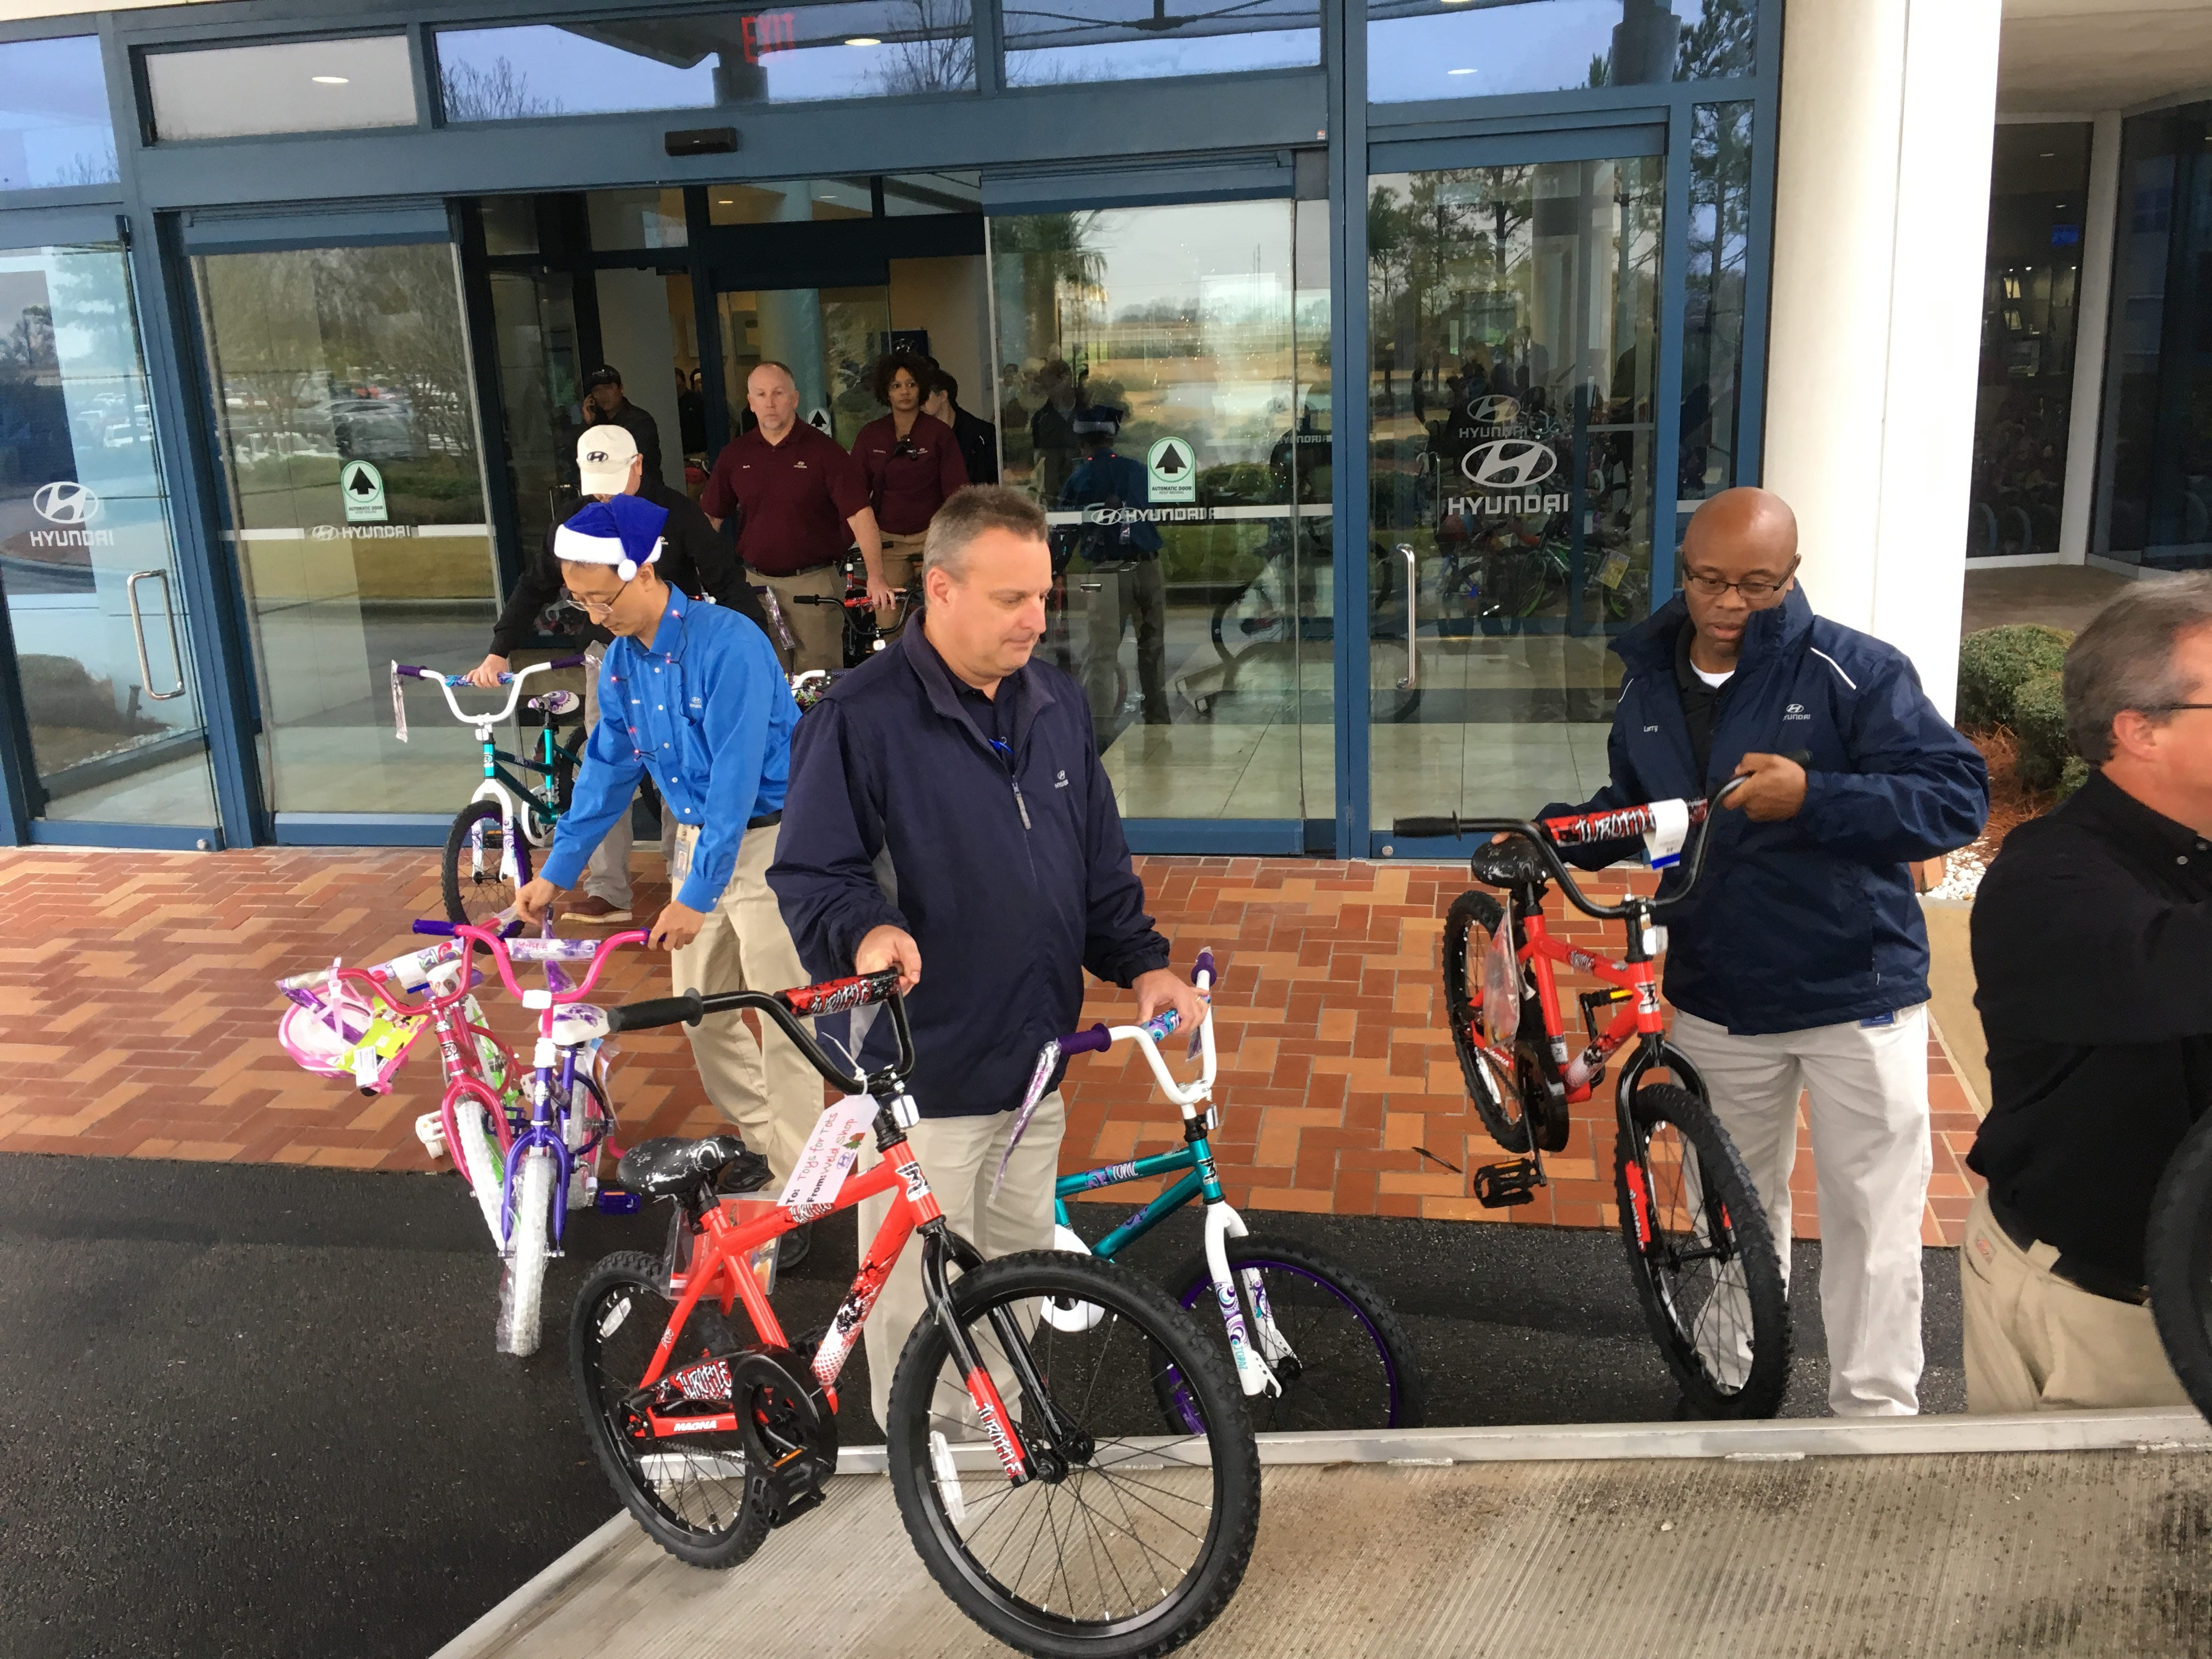 Workers at the Hyundai plant in Montgomery load donated bicycles into a truck.